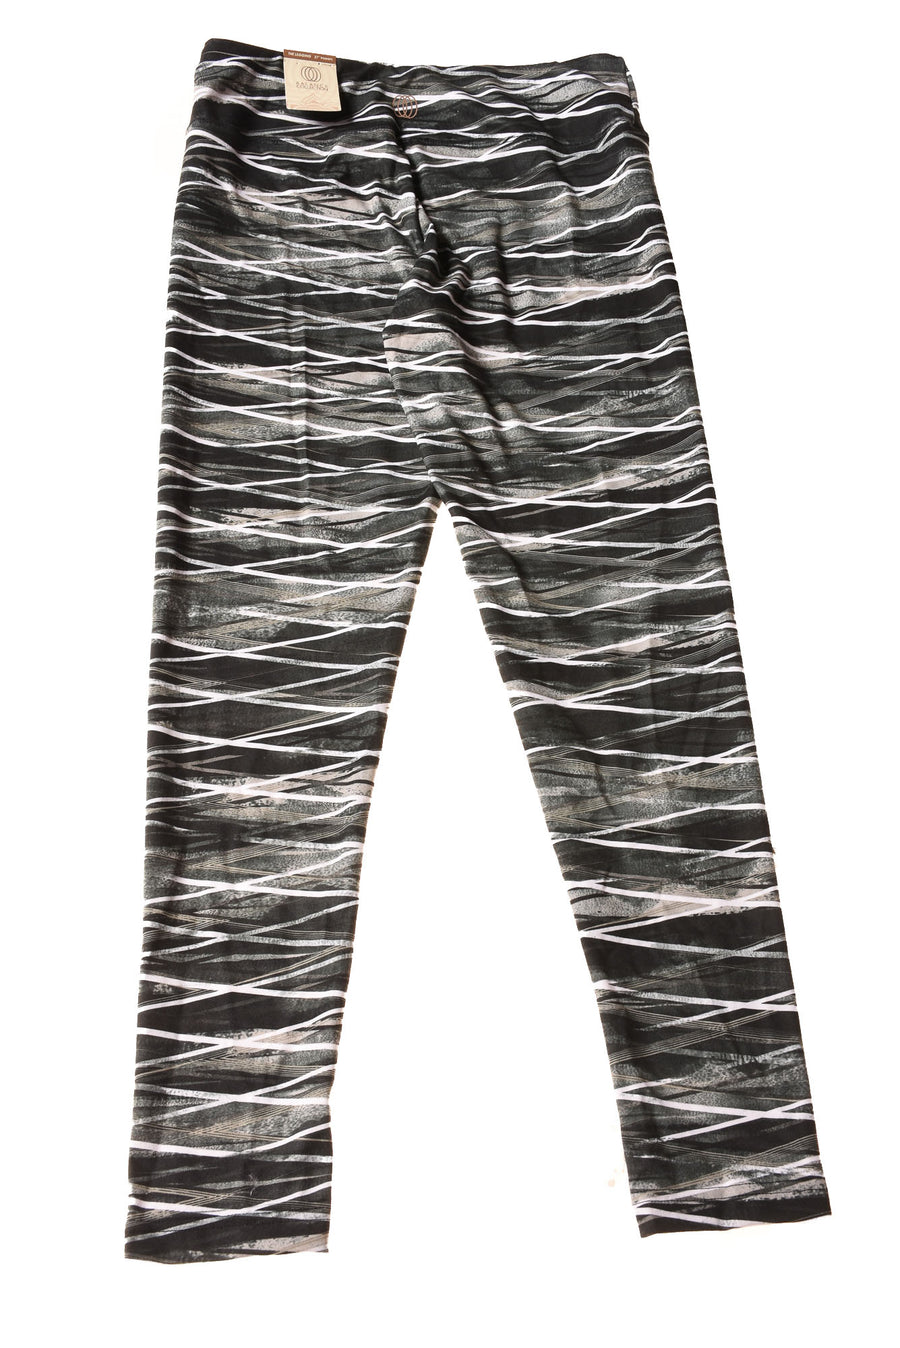 Women's Leggings By Balance Collection